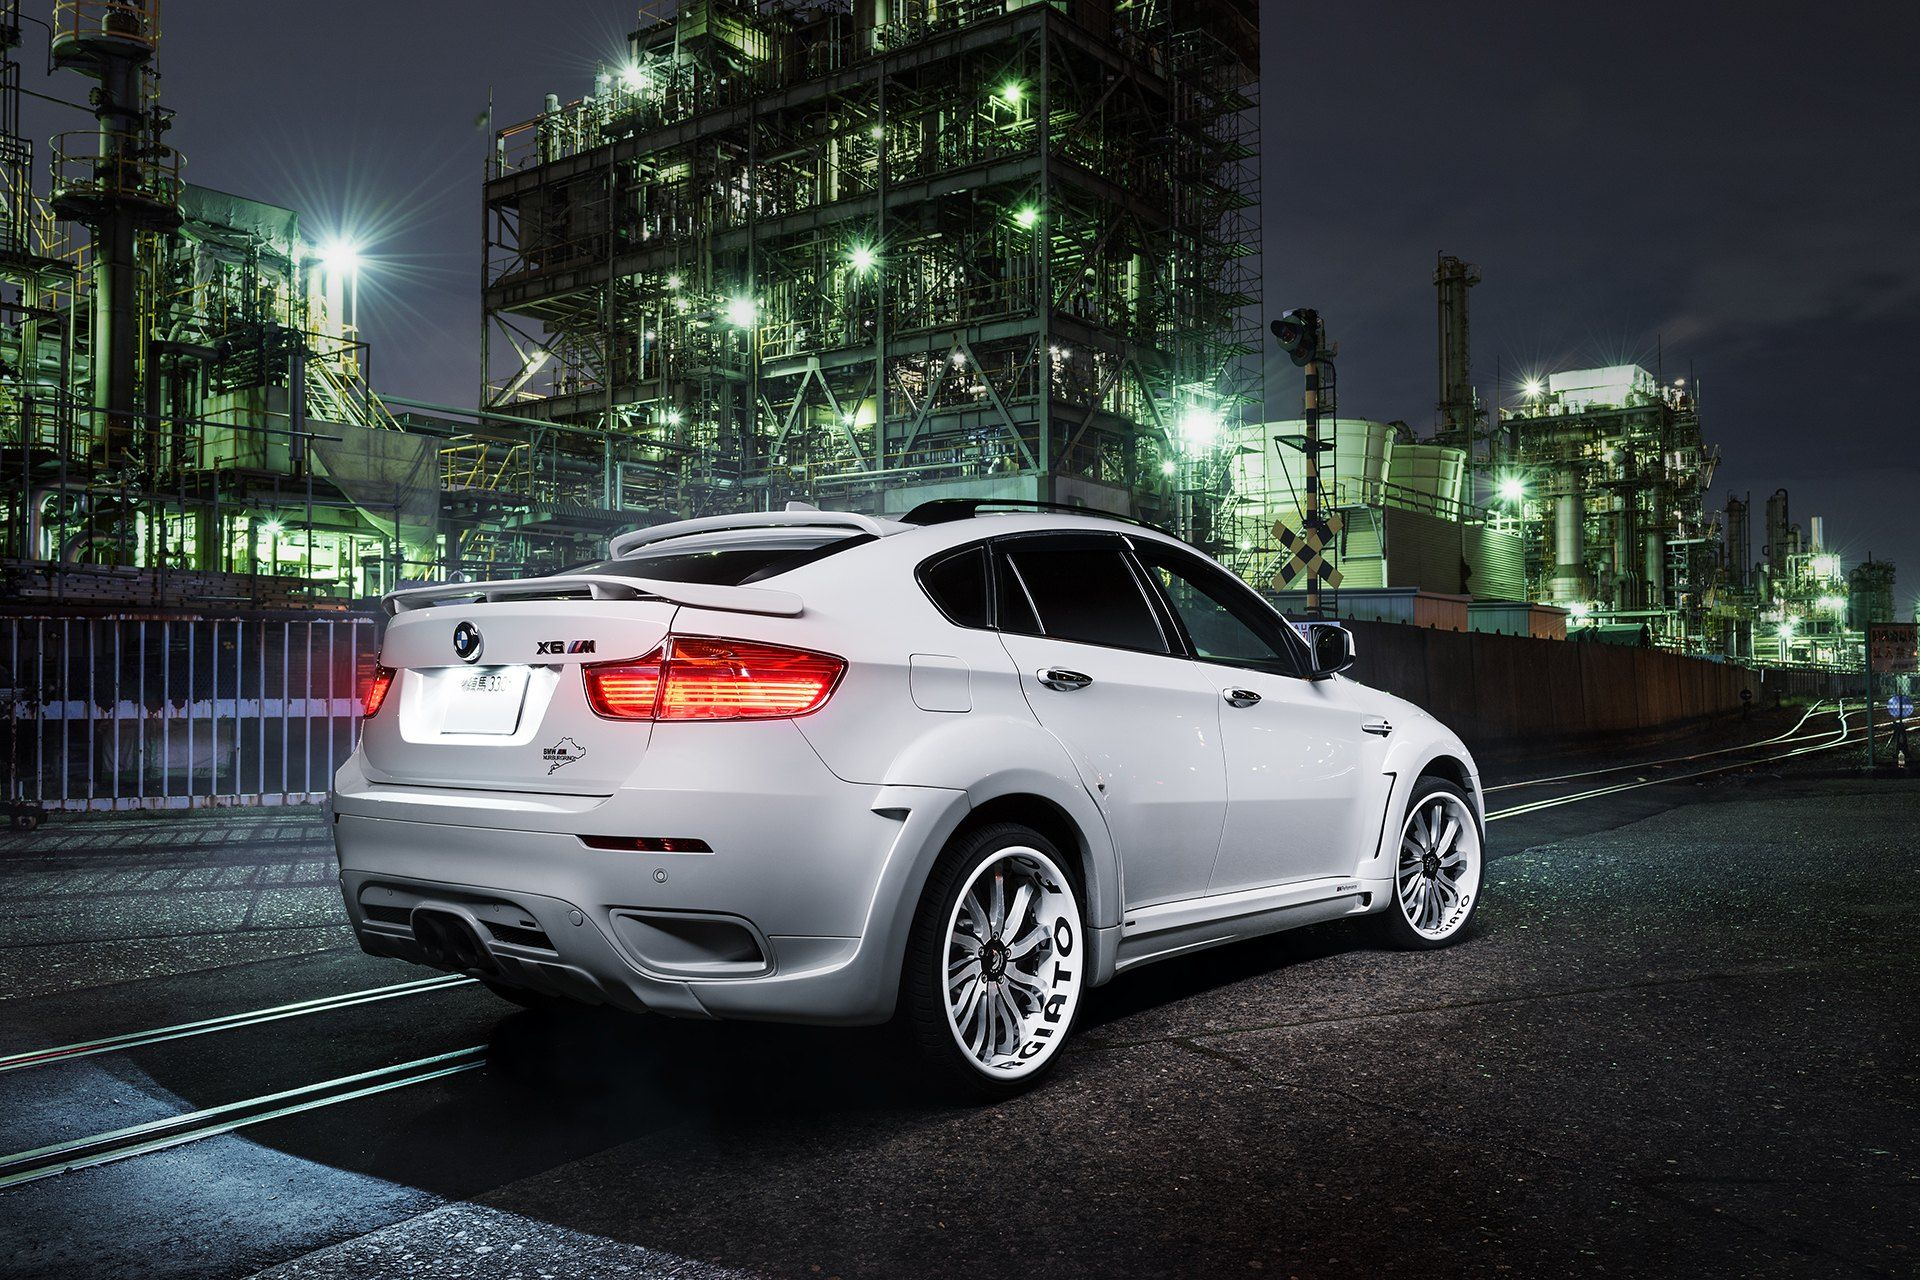 Updates Of Hindustan New Bmw X6 2020 Launched In India Images Colours Mileage Reviews In 2020 Bmw X6 New Bmw Bmw X6 White